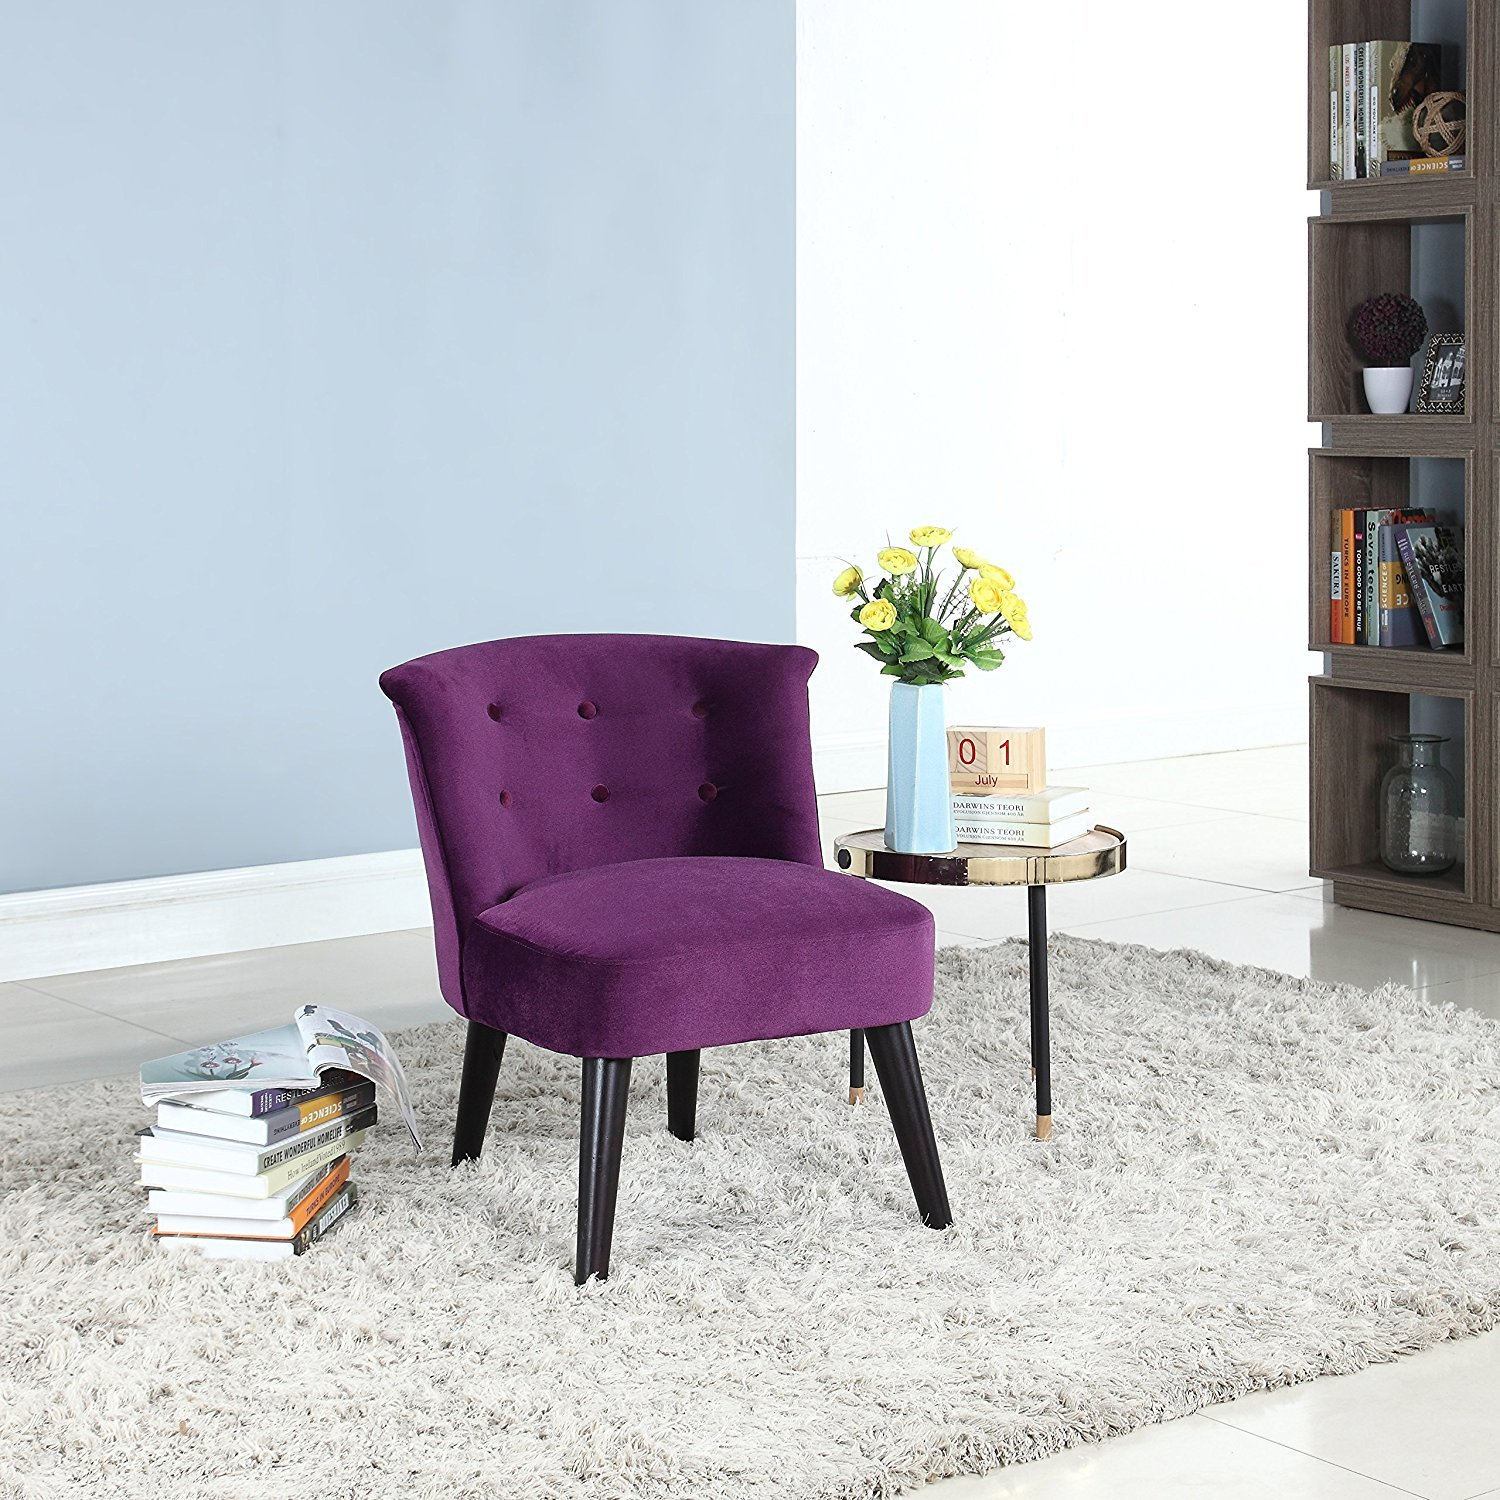 Fabulous Details About Modern Home Living Room Velvet Fabric Accent Chair With Buttons Velvet Purple Gamerscity Chair Design For Home Gamerscityorg